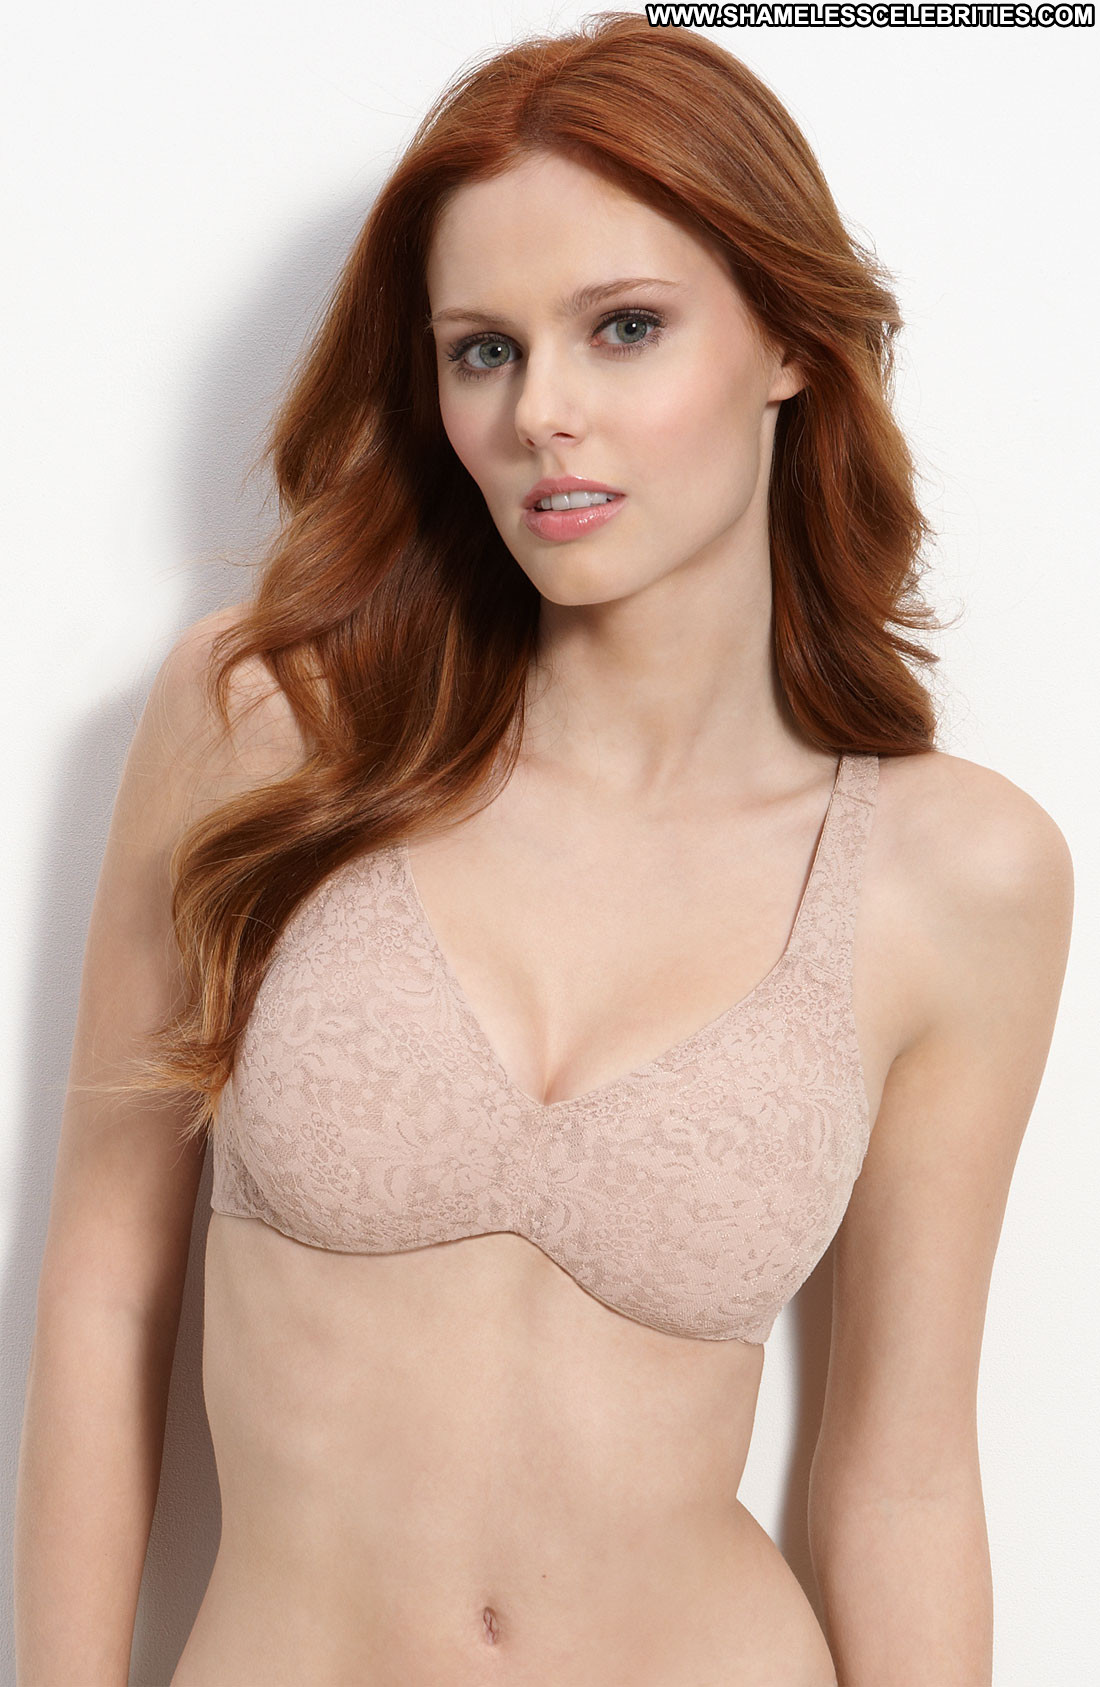 Alyssa Campanella Lingerie Celebrity Beautiful Babe Posing Hot